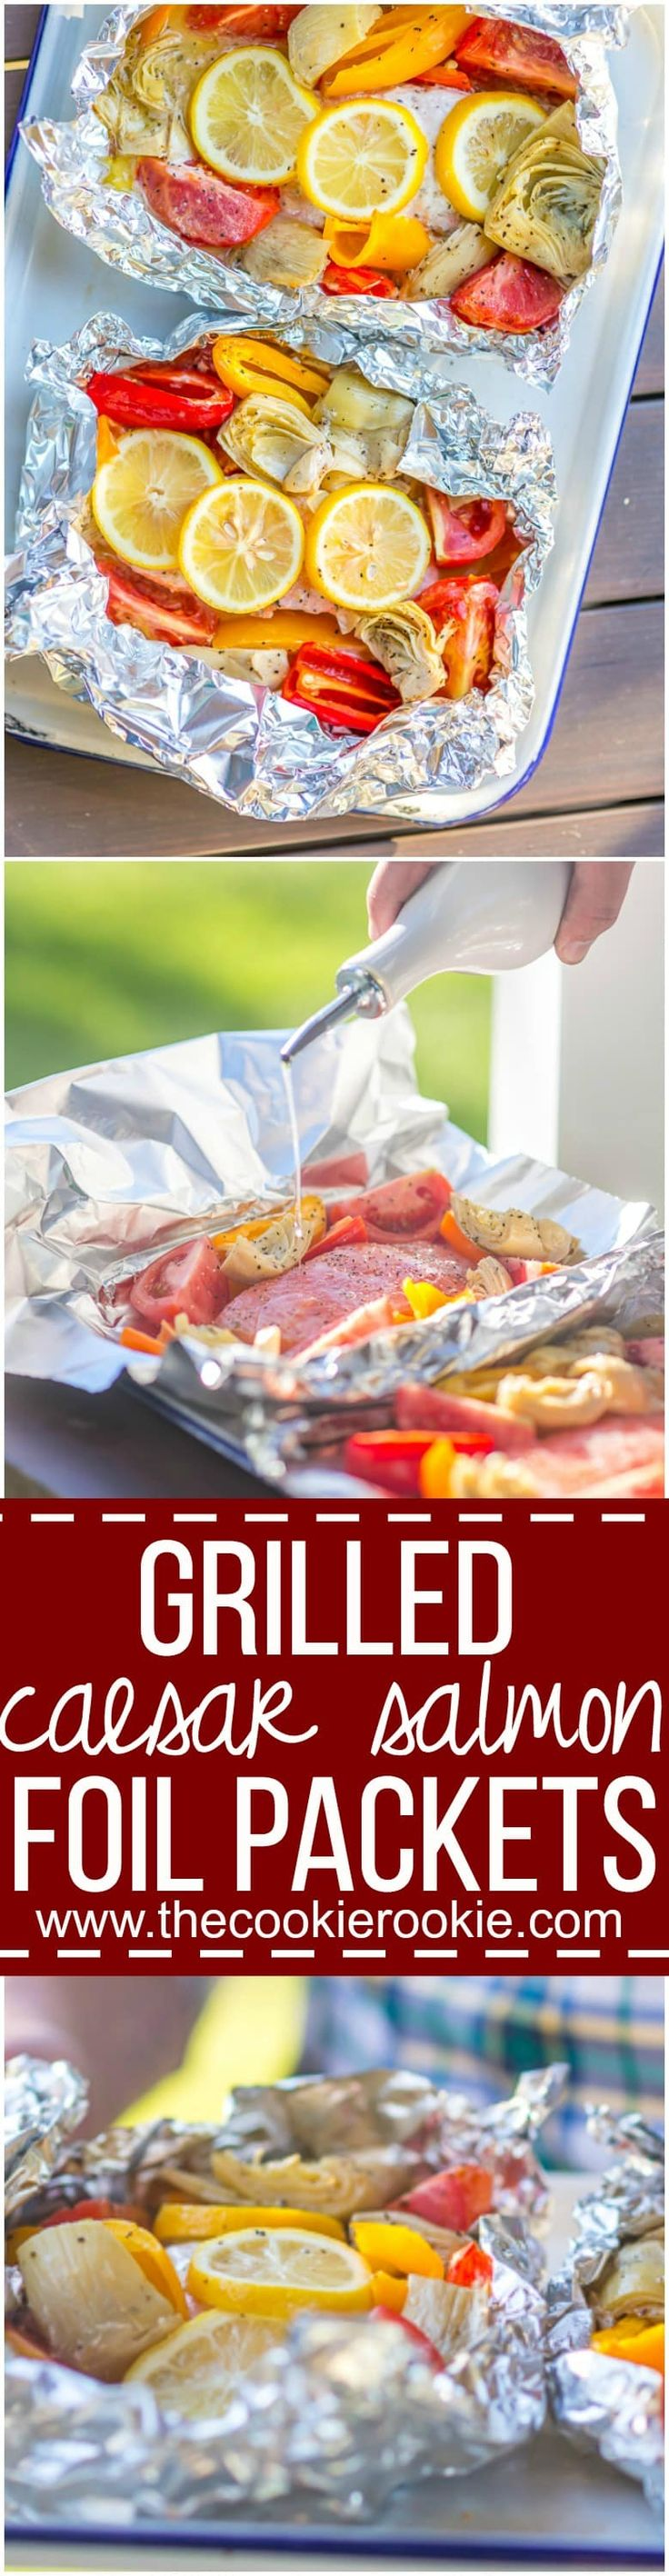 These GRILLED CAESAR SALMON FOIL PACKETS are the perfect way to enjoy seafood on the grill this Summer. Salmon, tomatoes, artichokes, and sweet pepper in foil...easiest most delicious dinner ever. via @beckygallhardin